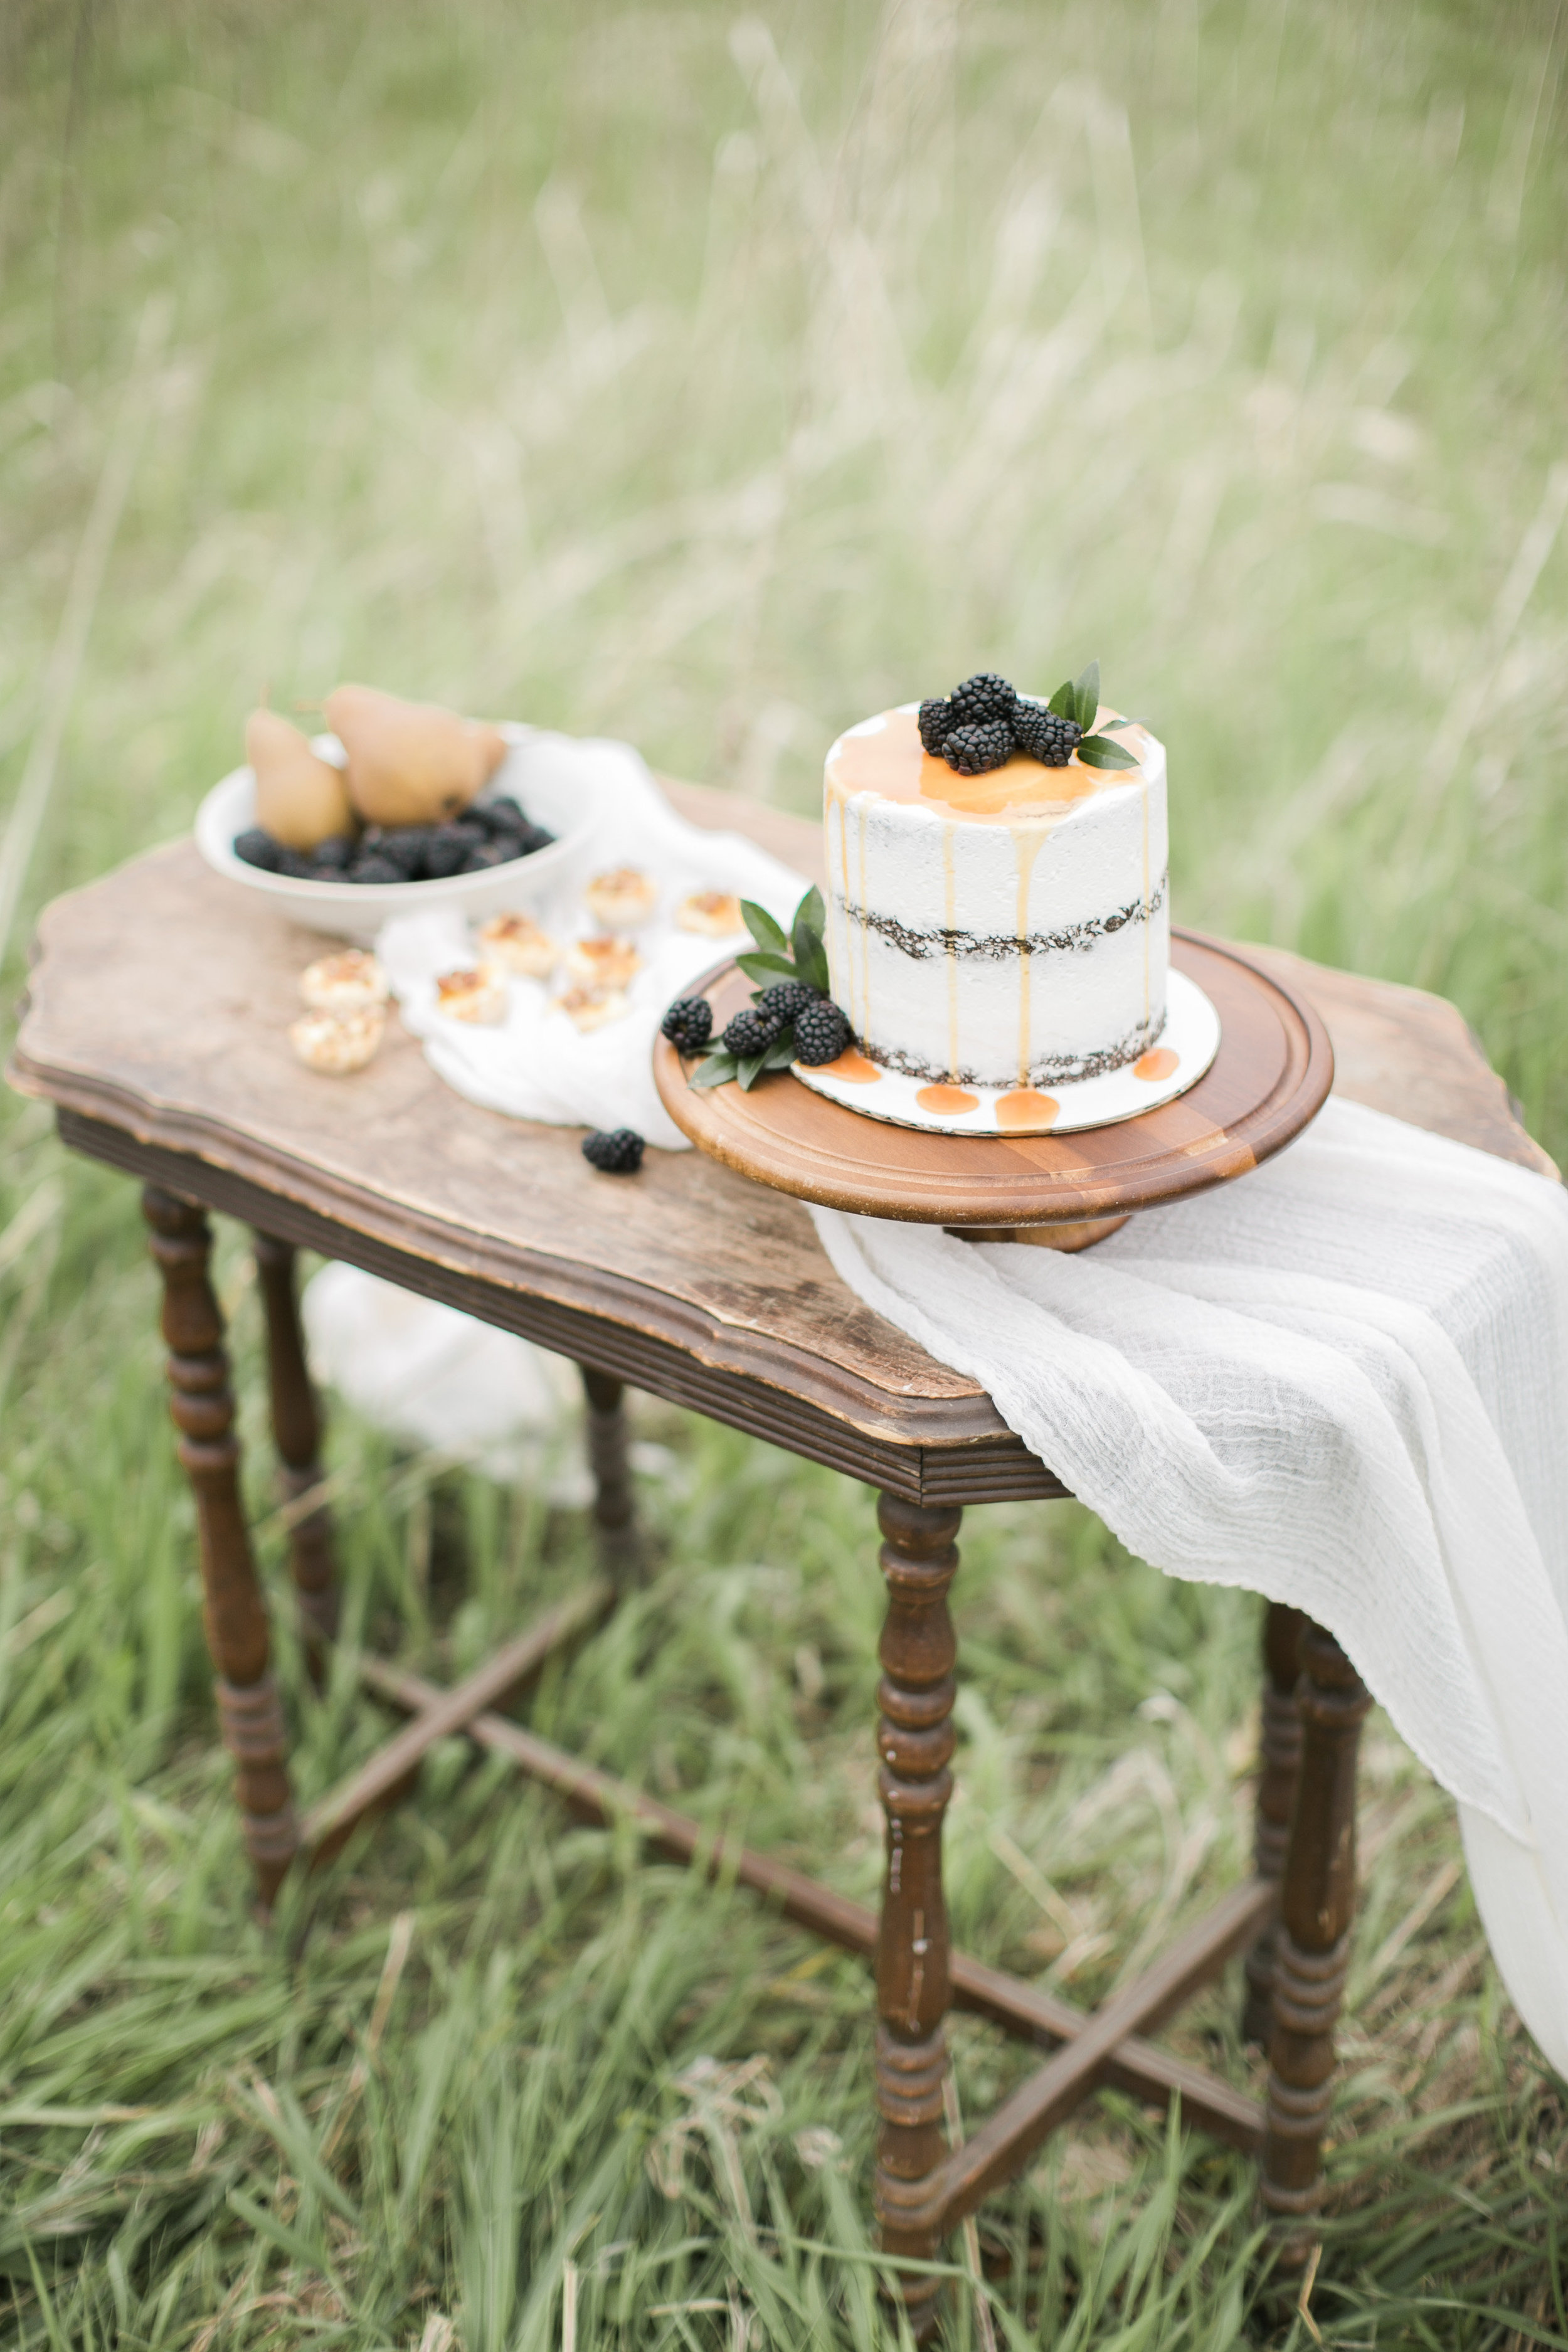 Farm to Table | Farm Wedding | Farm Elopement | Country Wedding | Ivory+Bliss | Photography Workshop | Fine Art Wedding Blog | Joy Wed | Ivory & Green Wedding | Naked Cake | Organic Country Wedding